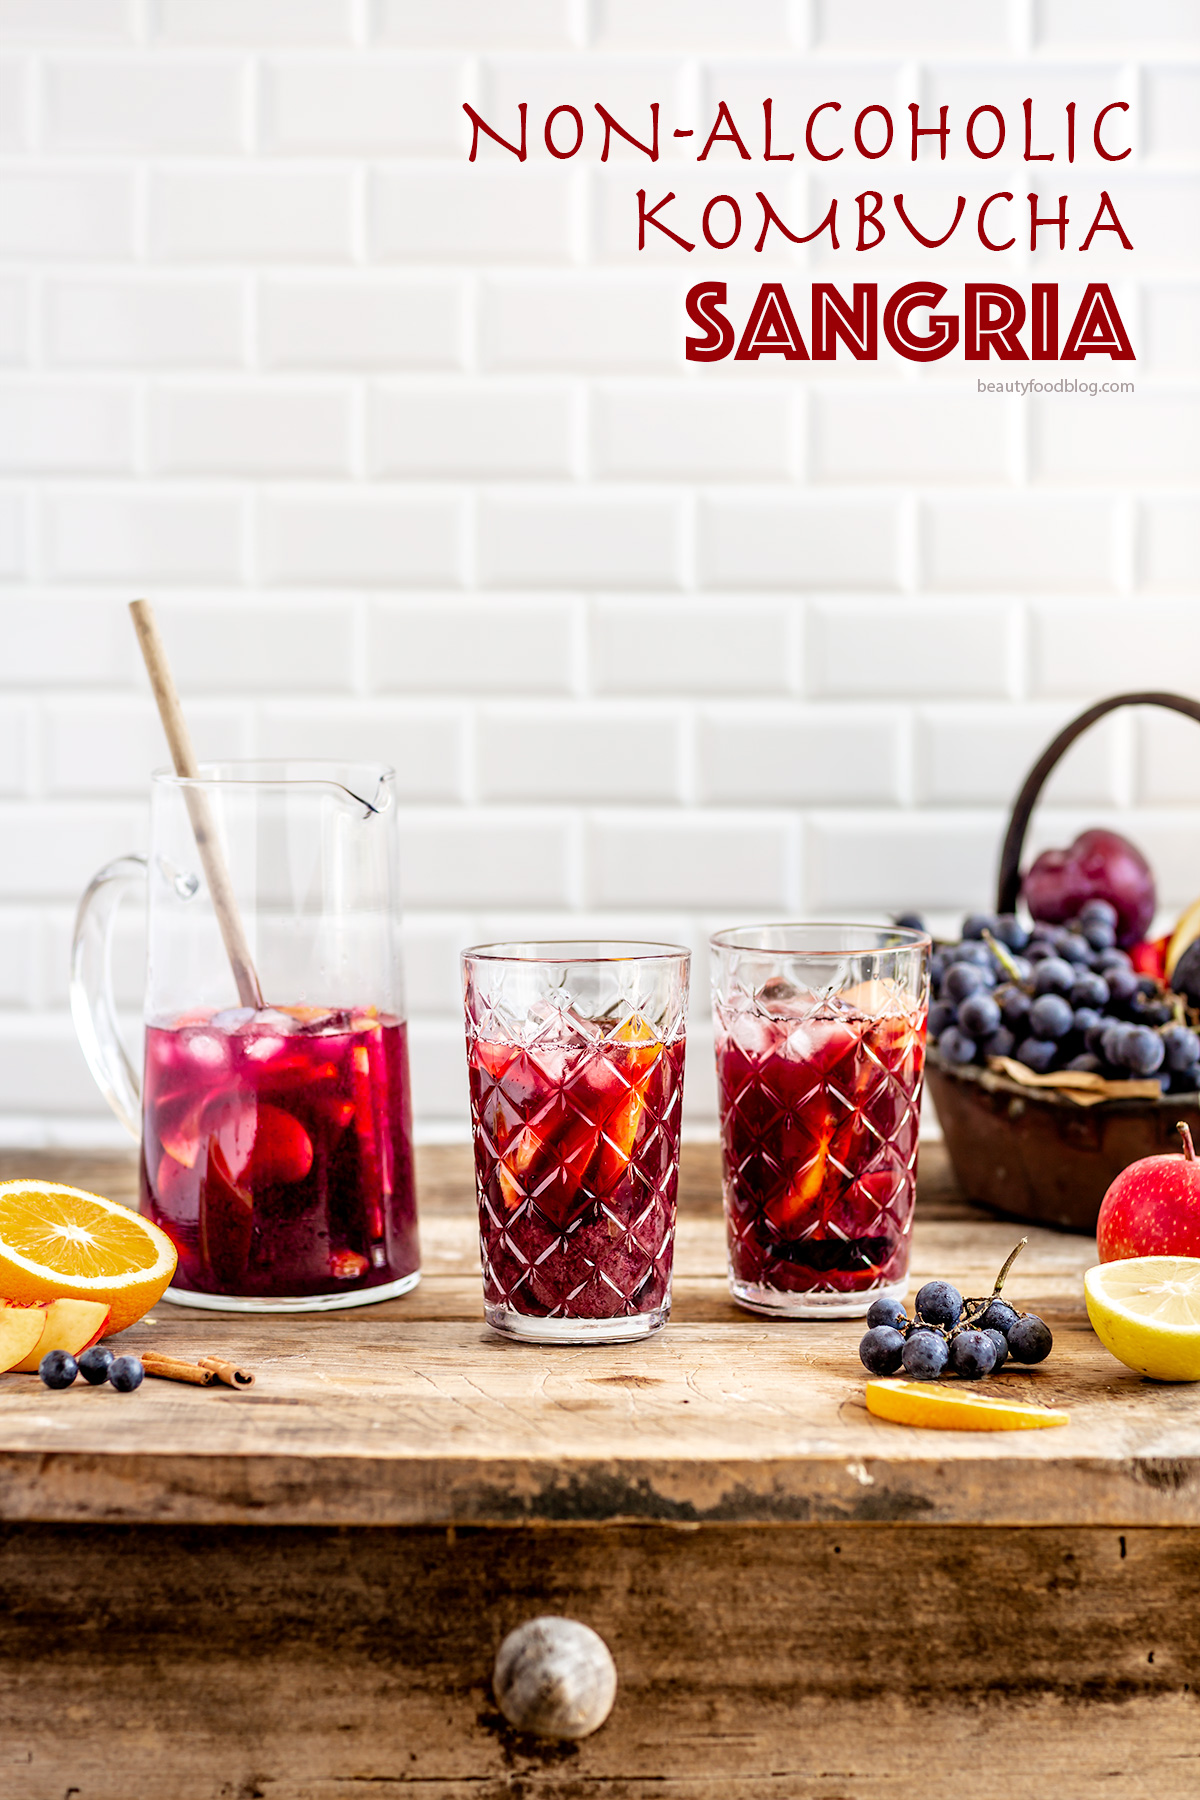 Simple HEALTHY non alcoholic KOMBUCHA SANGRIA recipe #vegan ricetta SANGRIA analcolica al KOMBUCHA facile light sana